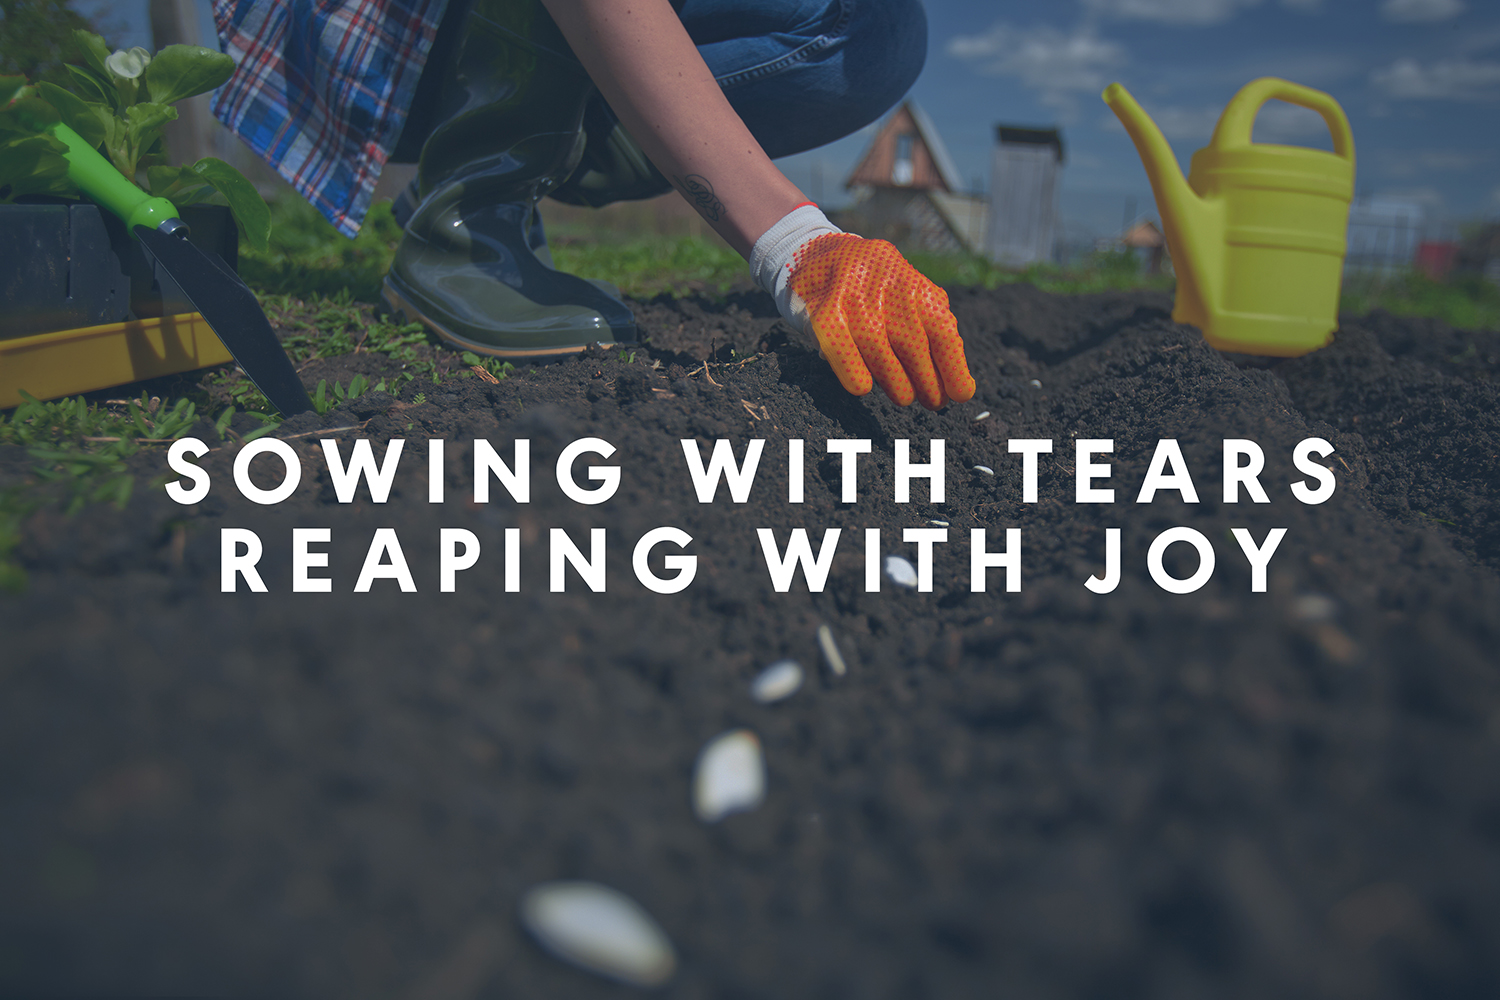 Sowing with tears, reaping with joy